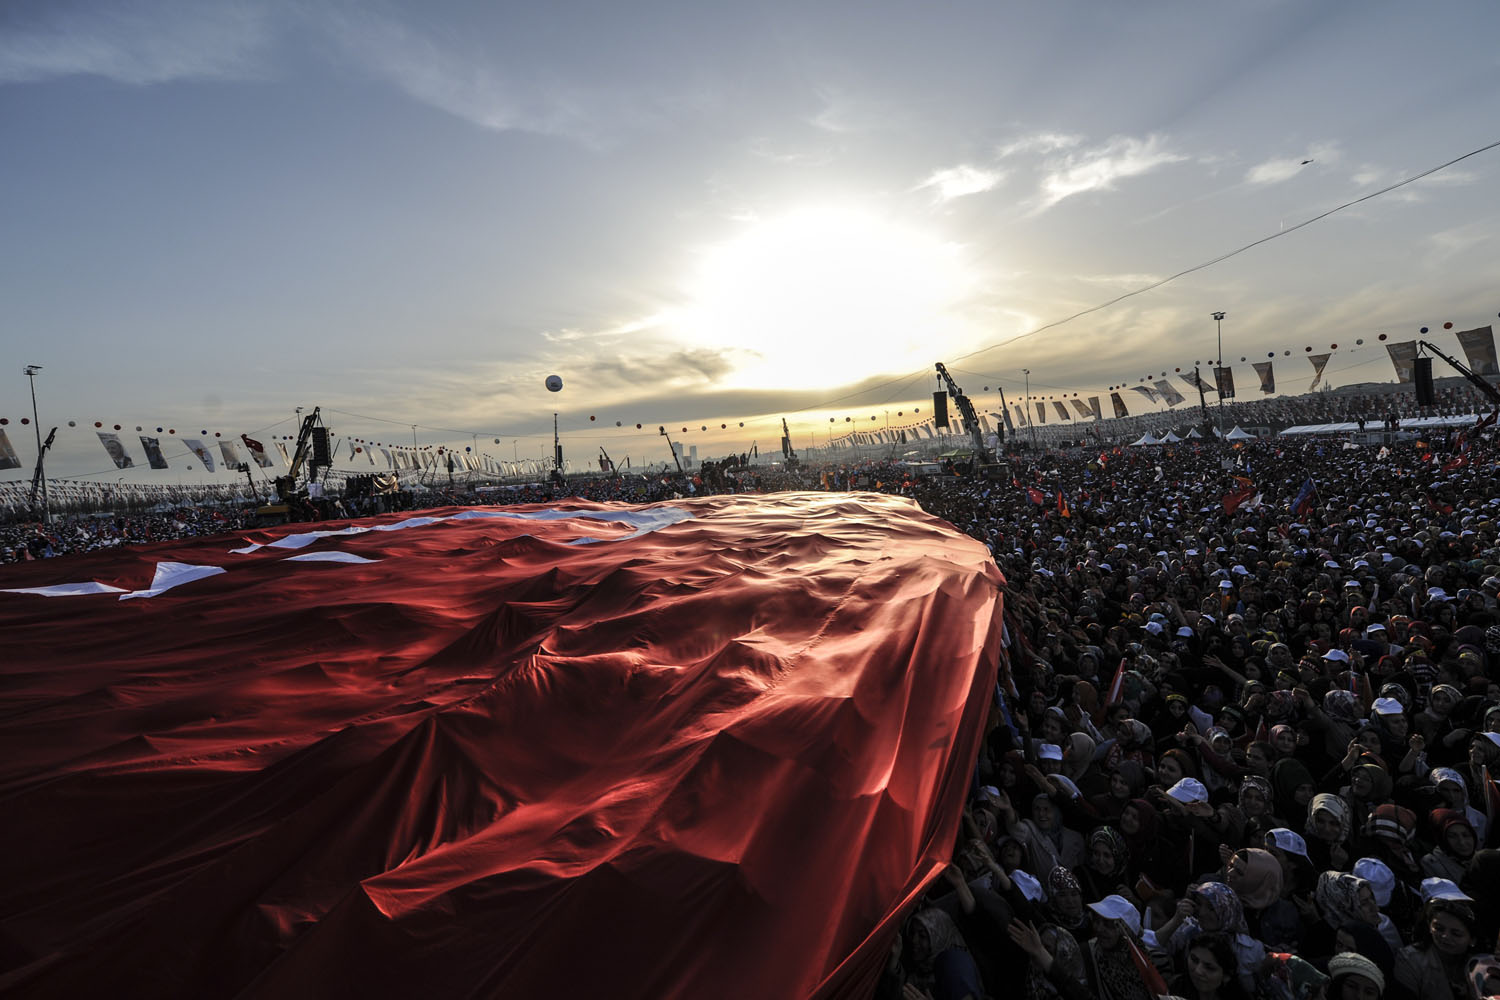 Supporters of Turkey's Prime Minister Tayyip Erdogan hold a giant Turkish flag during an election rally in Istanbul March 23, 2014.